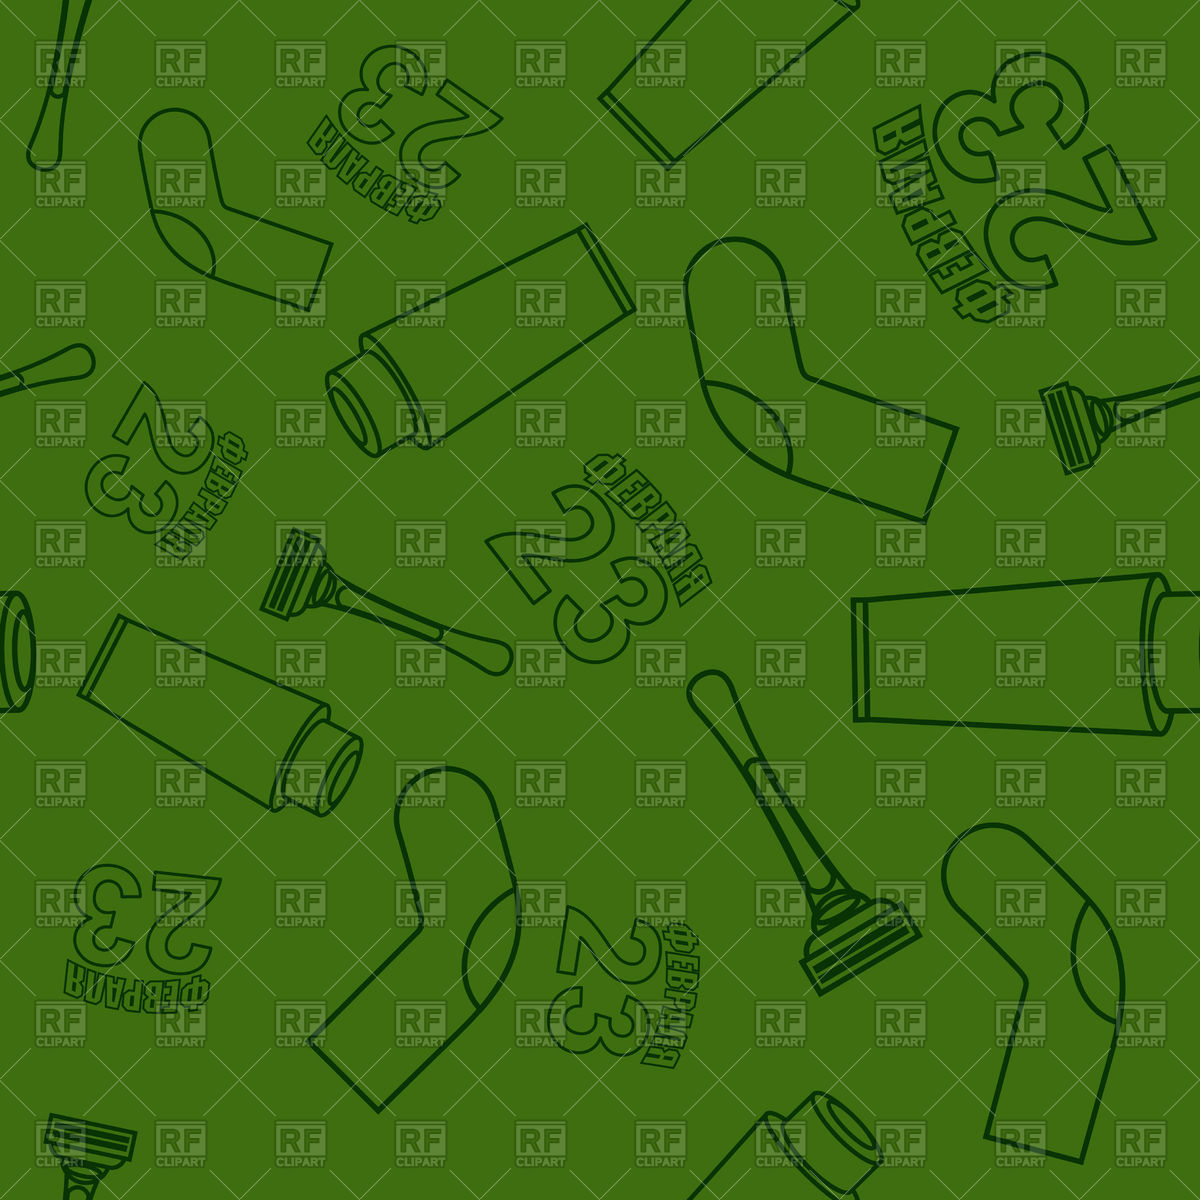 February background clipart vector free library 23 february background Vector Image #128403 – RFclipart vector free library